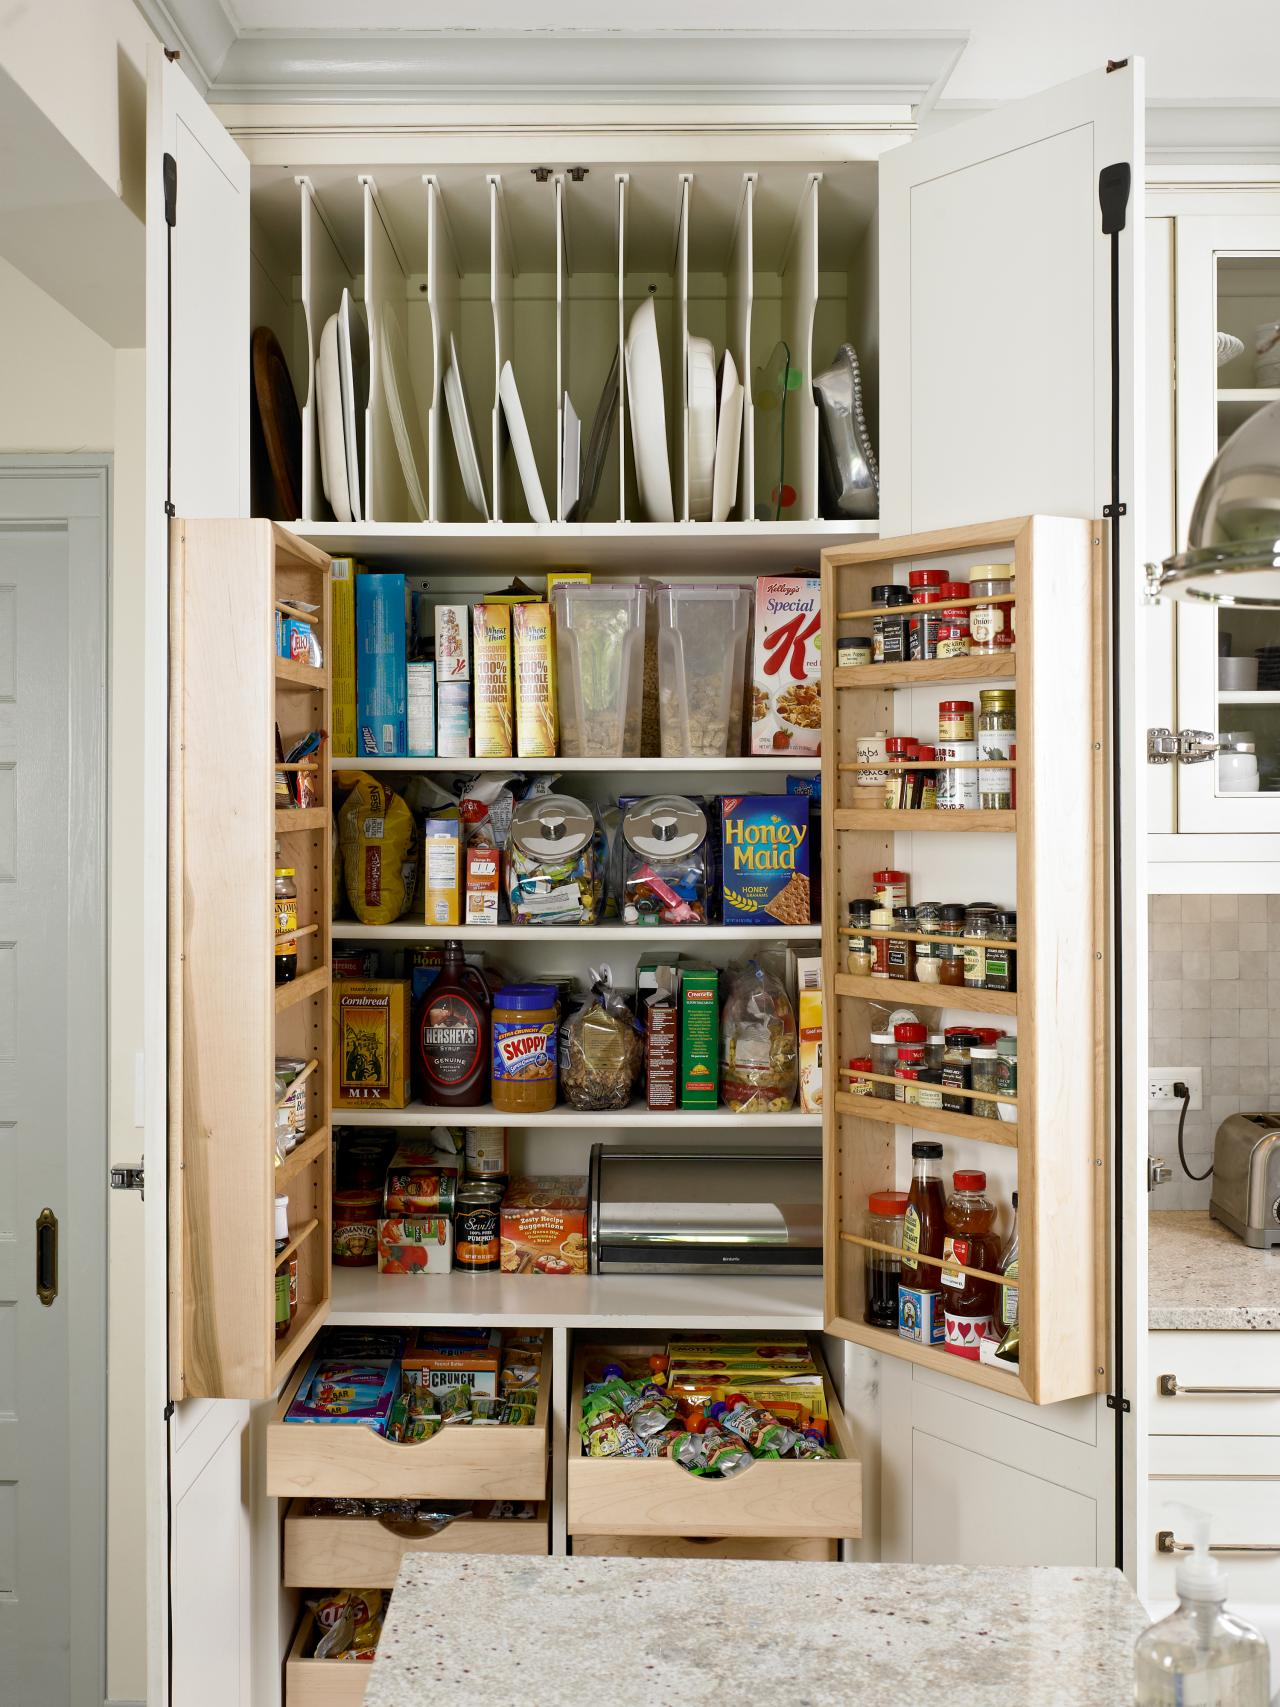 Small kitchen storage ideas pictures tips from hgtv hgtv for Pantry ideas for a small kitchen